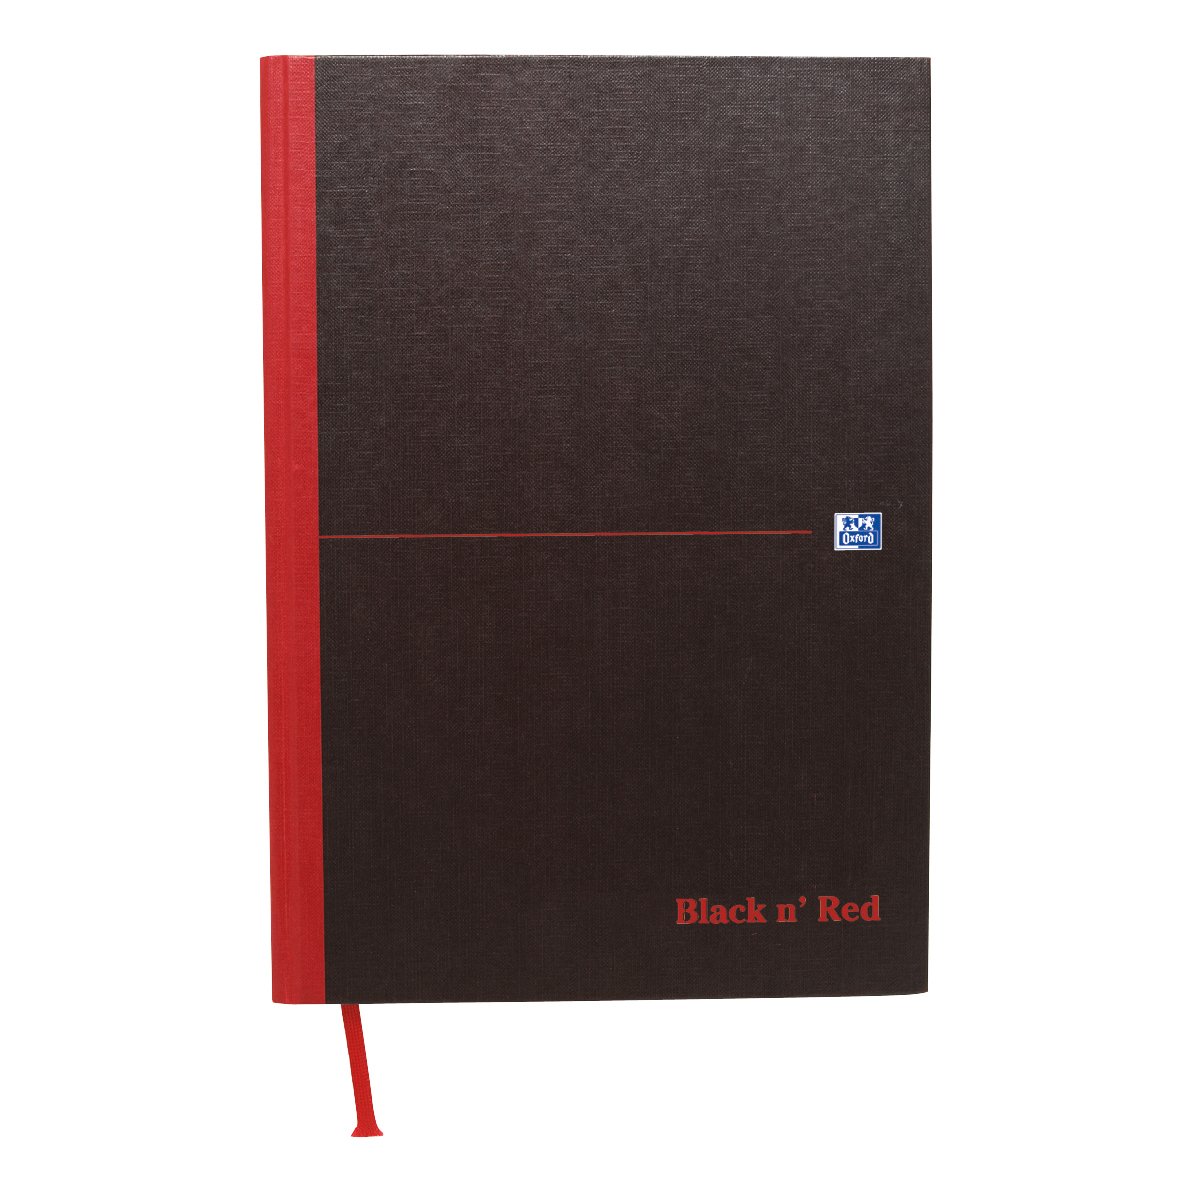 Black n Red Notebook Casebound 90gsm Narrow Ruled 192pp A4 Ref 100080474 [Pack 5]